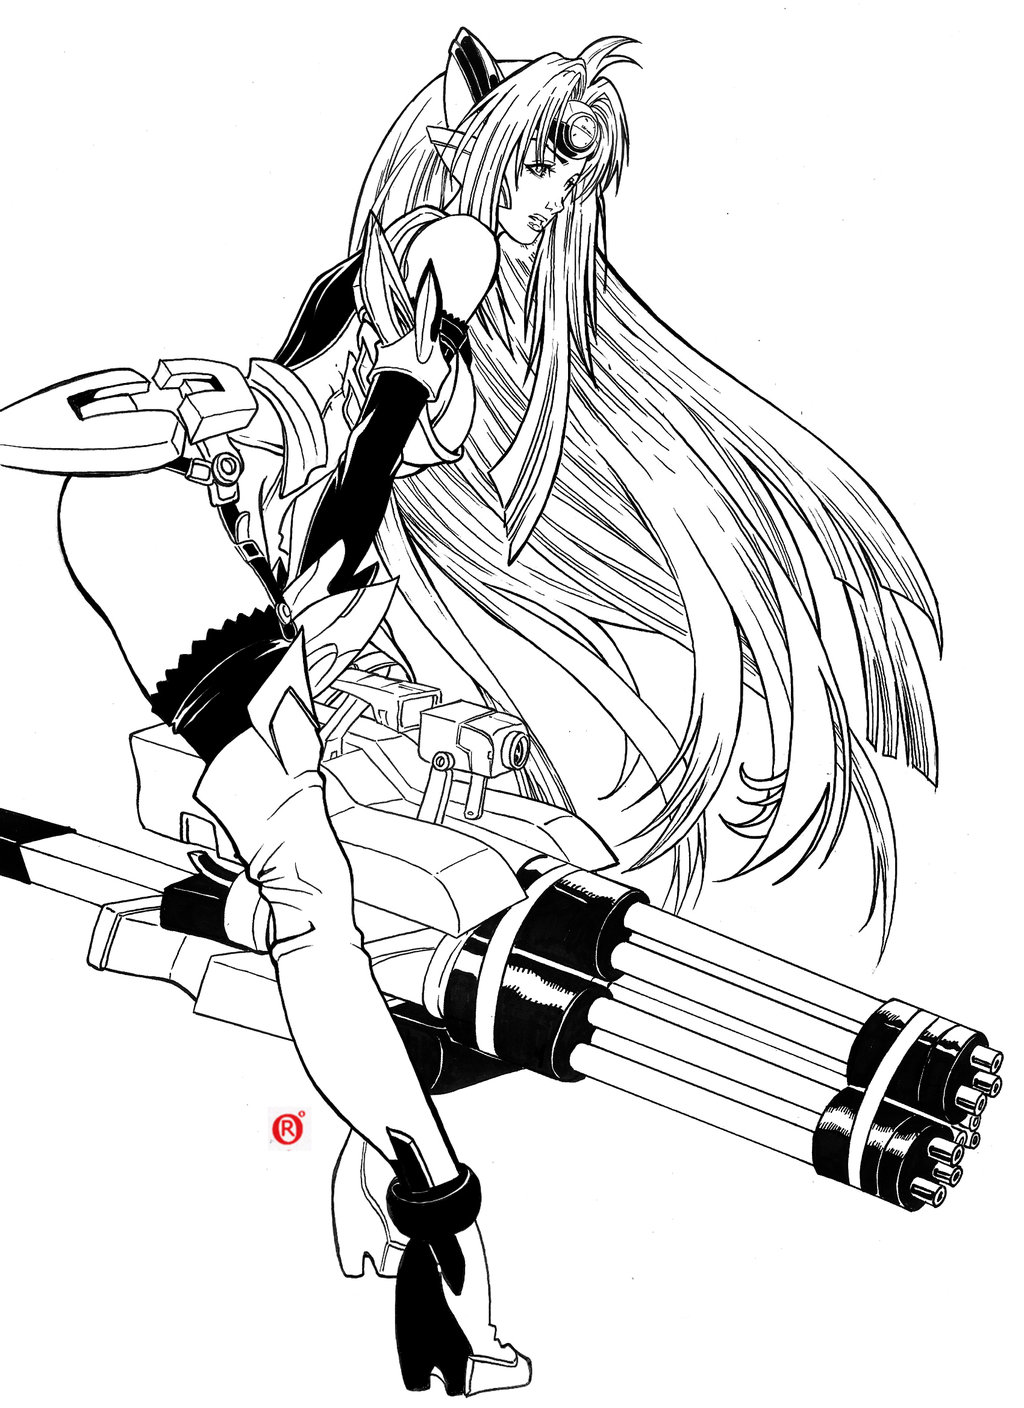 Kos Mos coloring #12, Download drawings